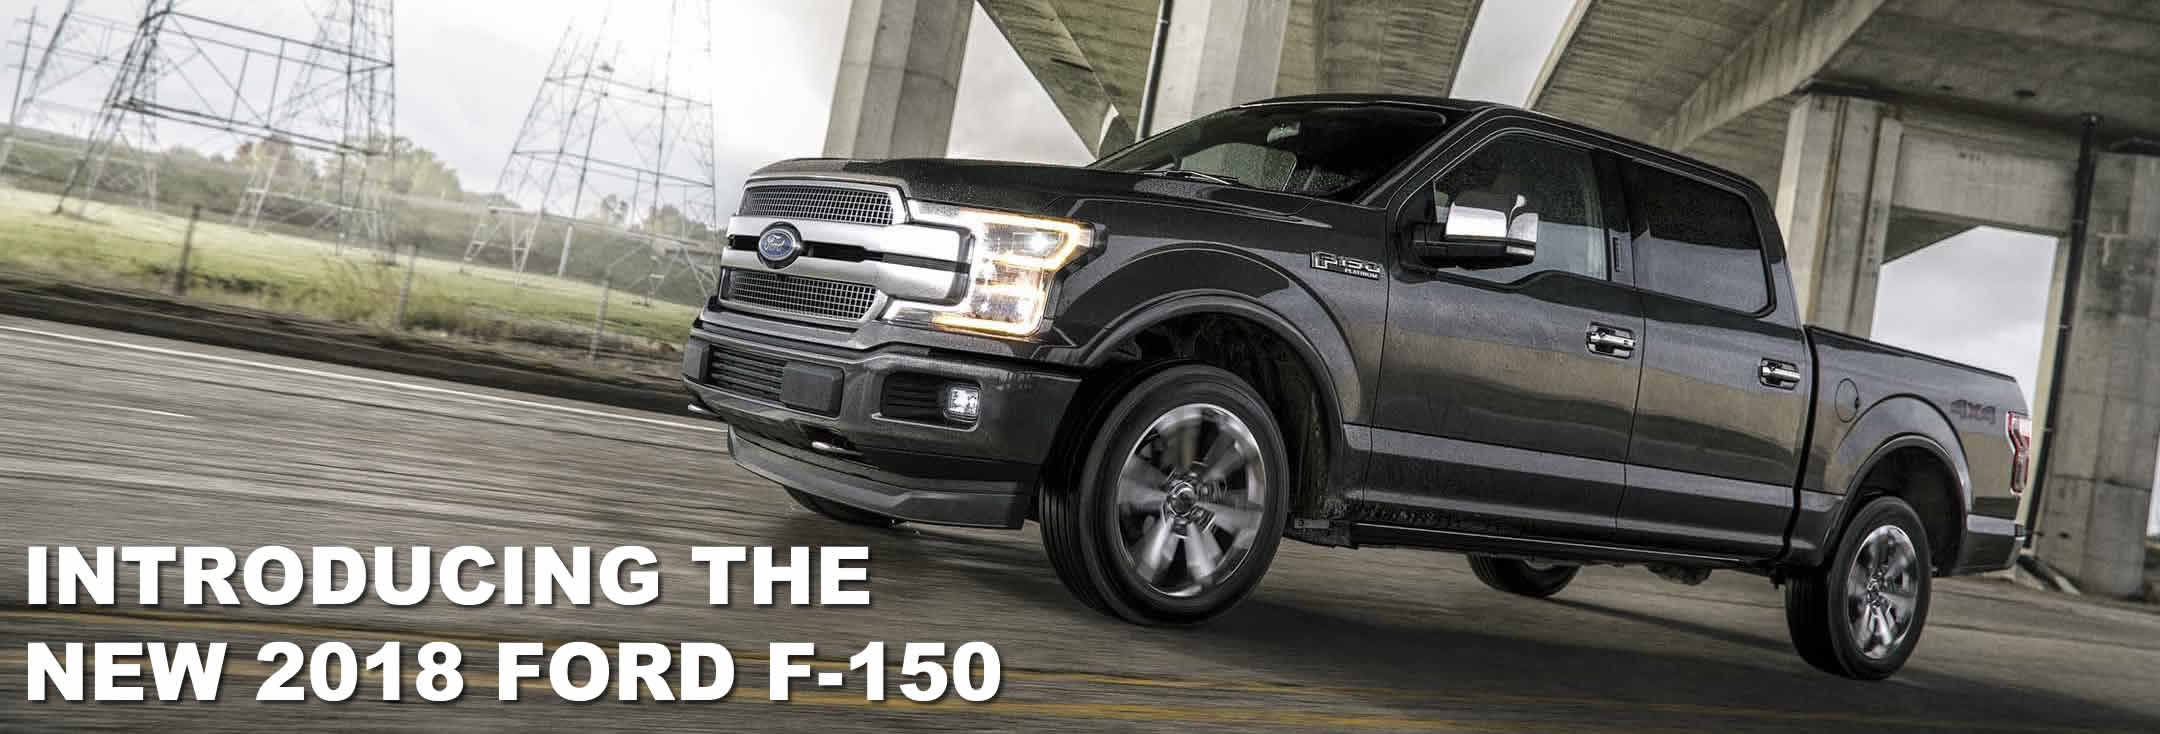 2018 Ford F-150 arrival date